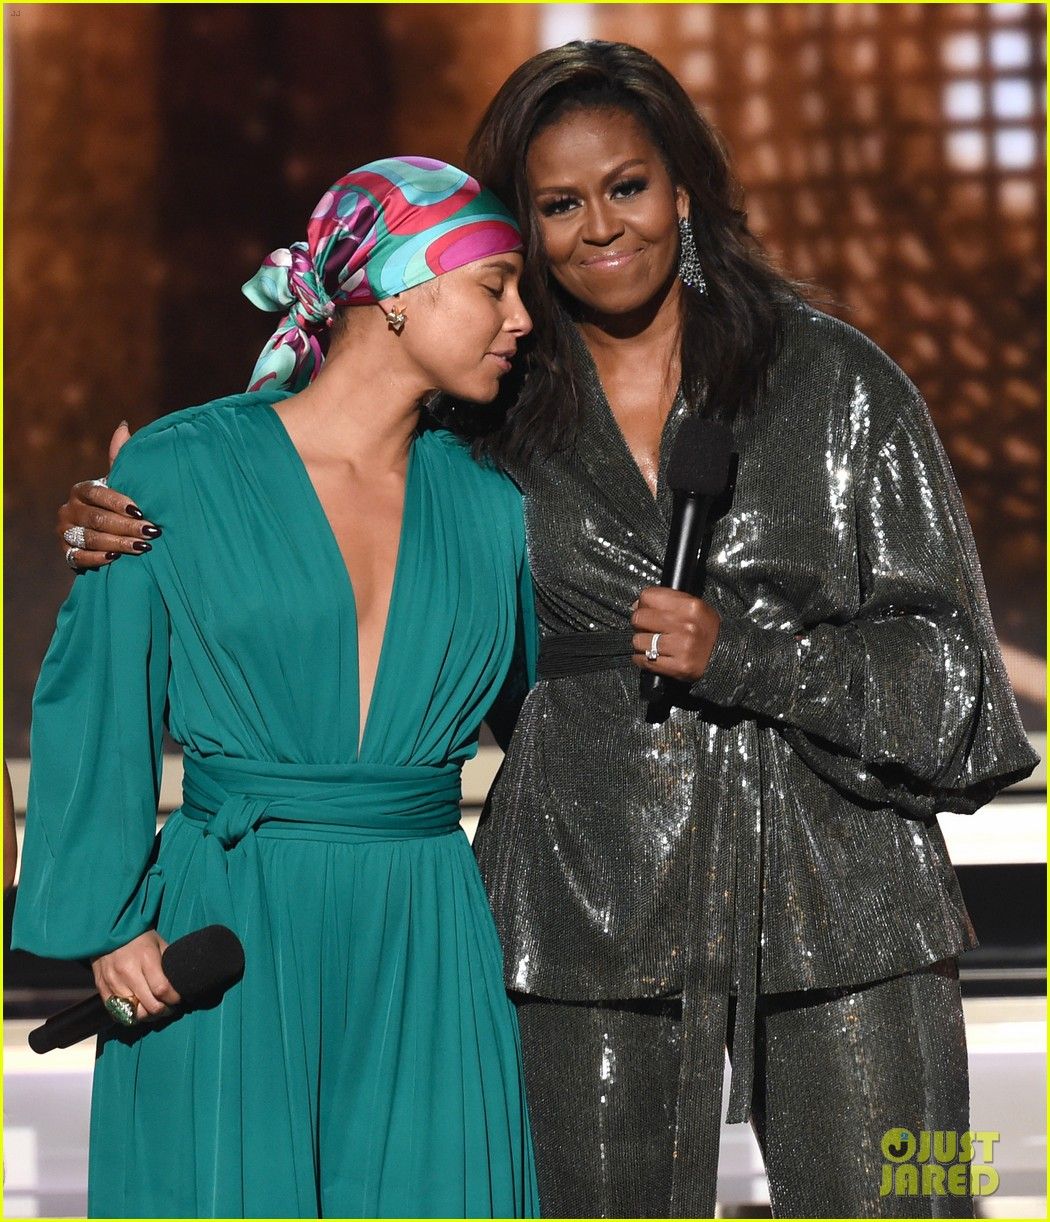 Michelle Obama, Alicia Keys, & More Share Powerful Grammys